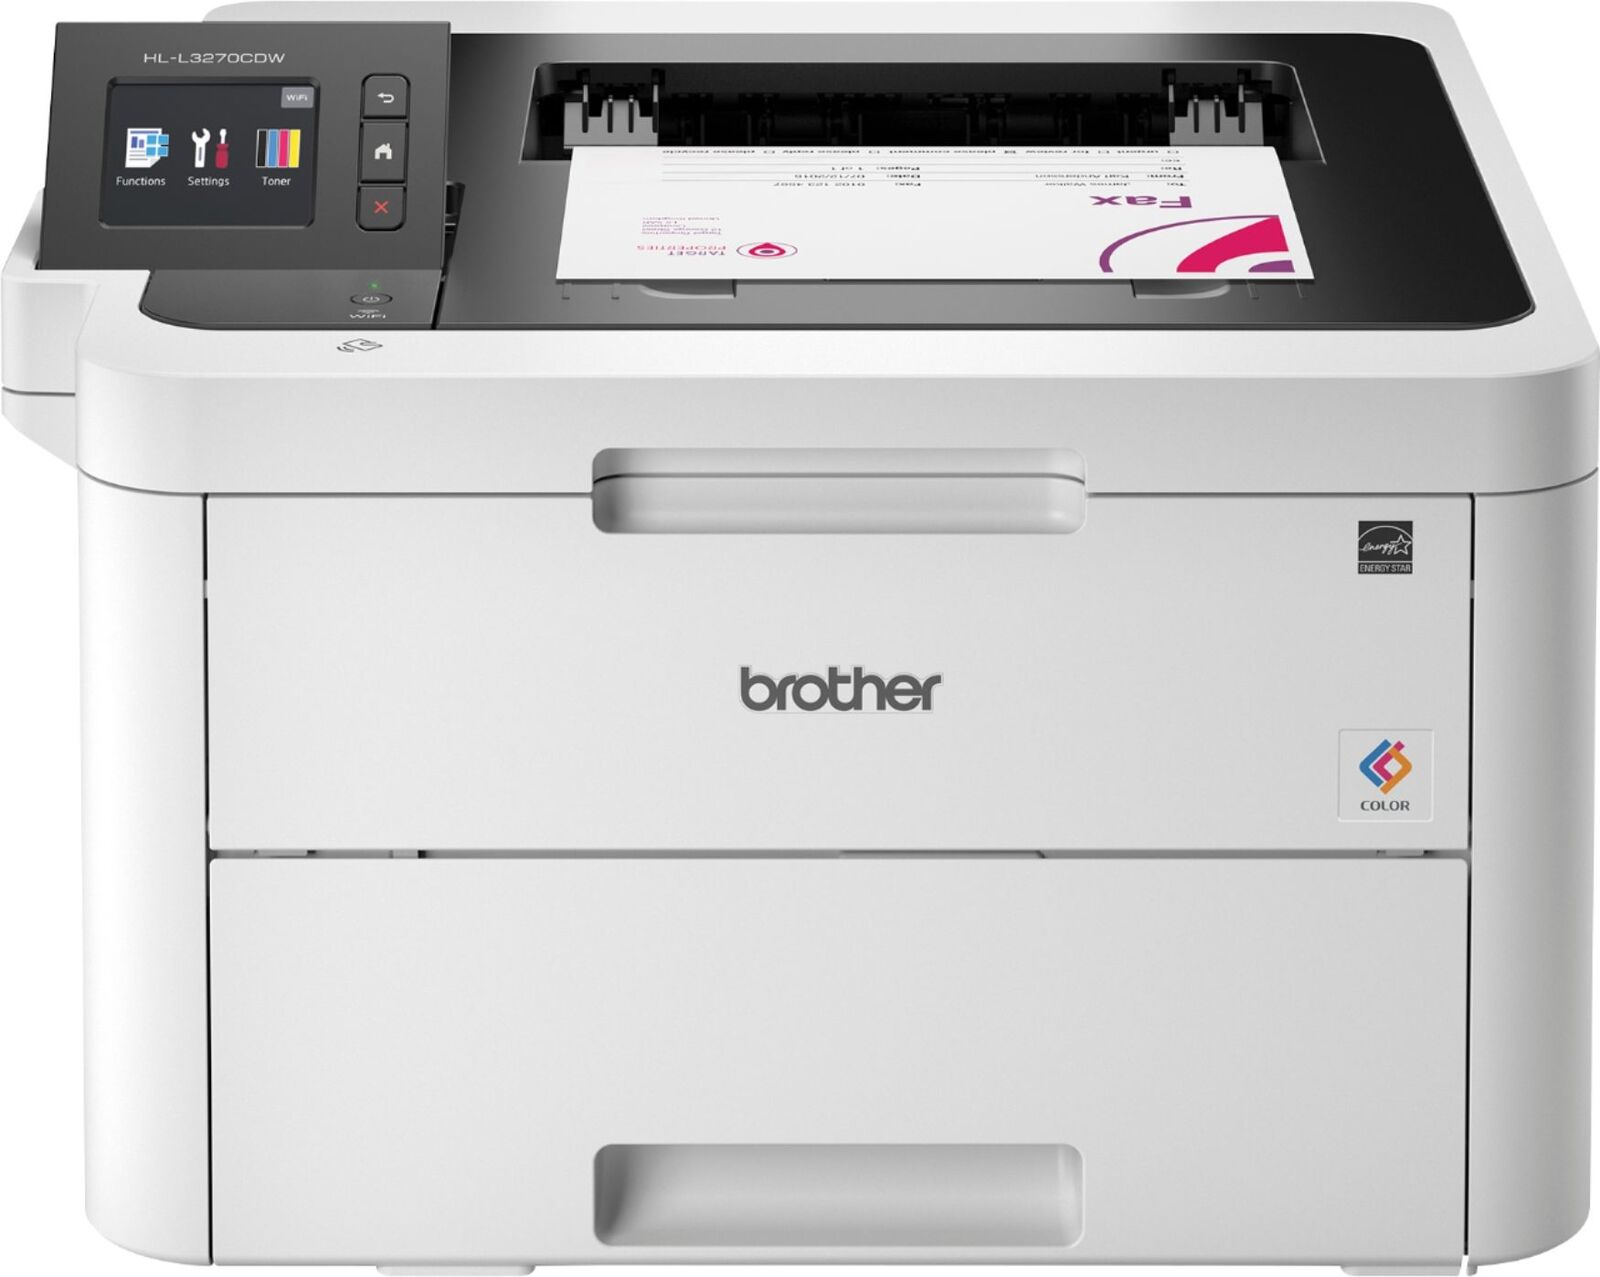 Brother - HL-L3270CDW Wireless Color Laser Printer - White. Buy it now for 249.99